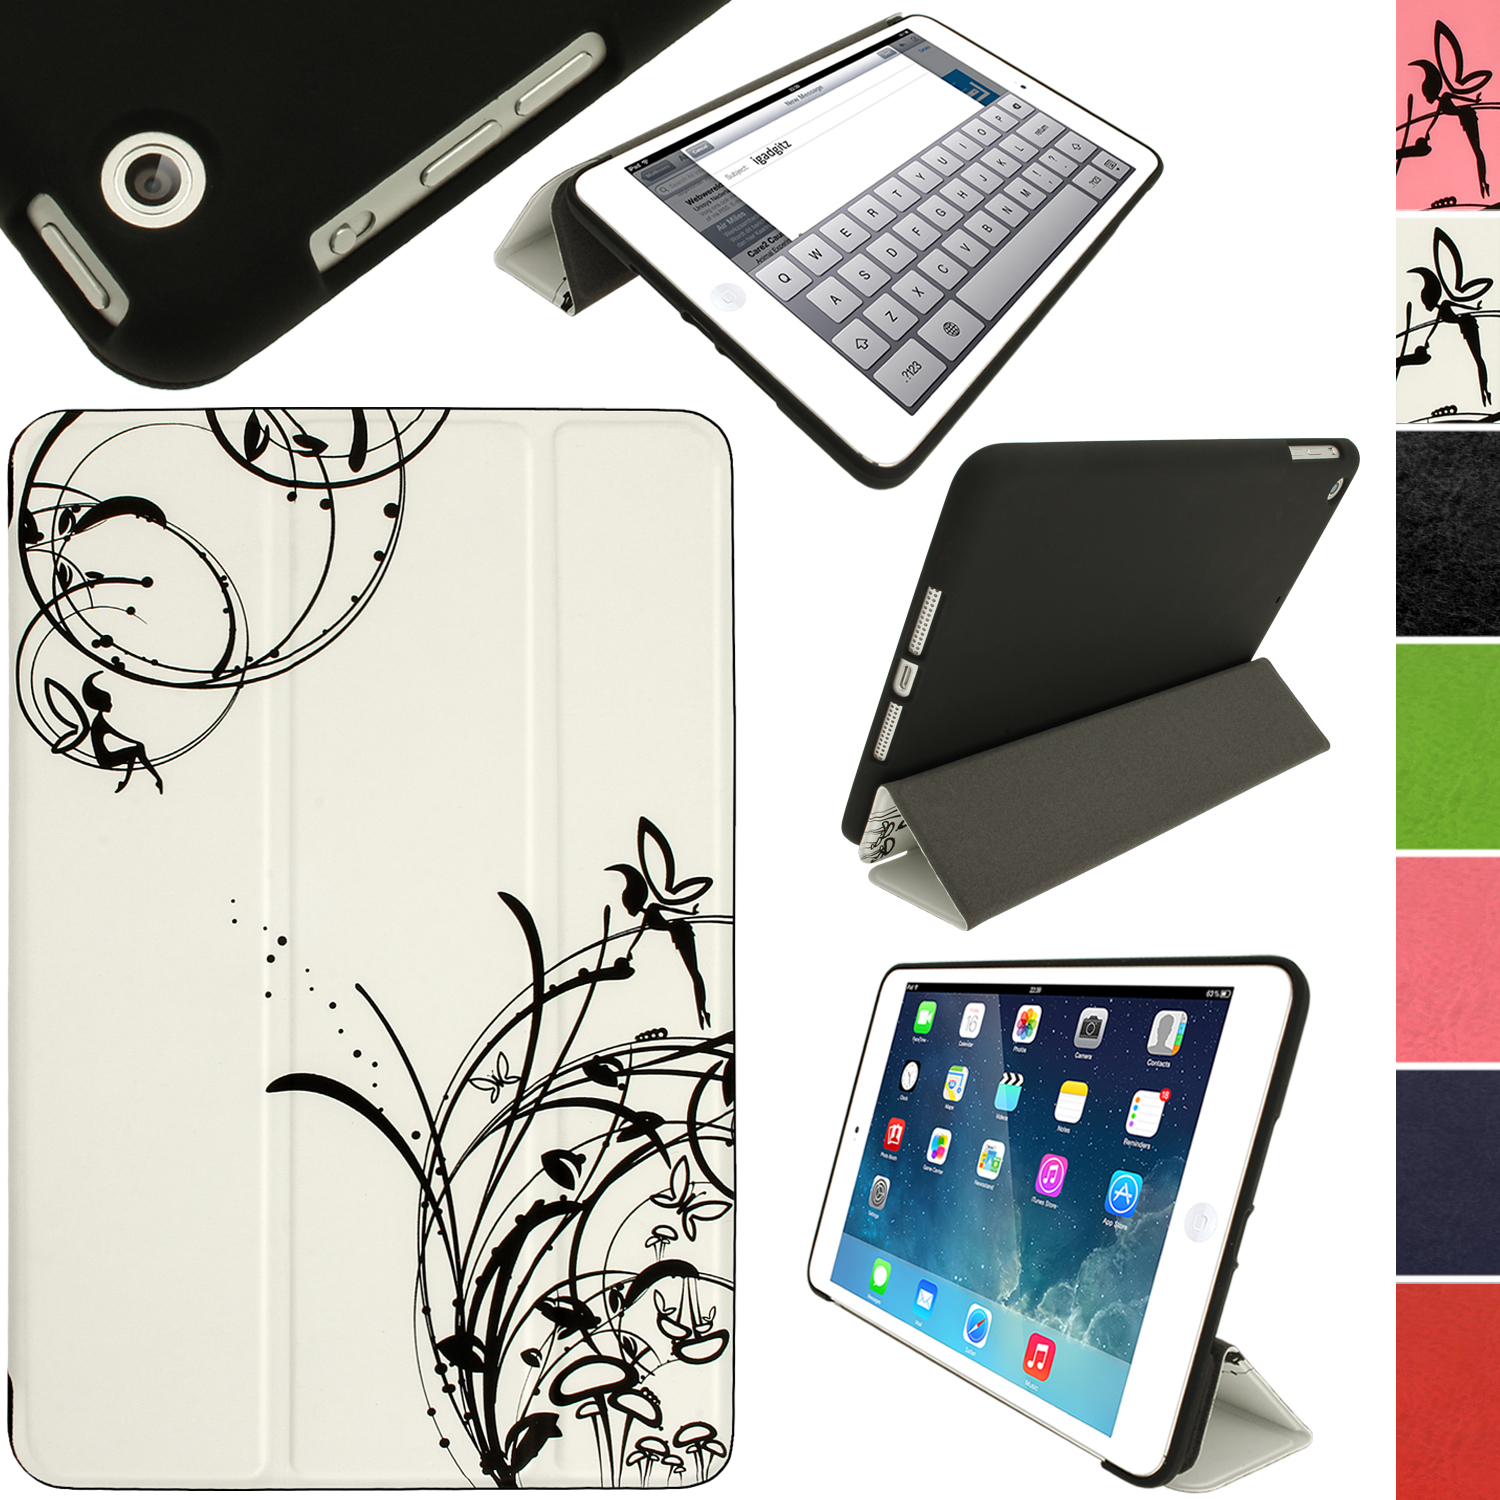 iGadgitz Fairy Butterfly Case for Apple iPad Mini + Sleep/Wake Function + Screen Protector (various colours)